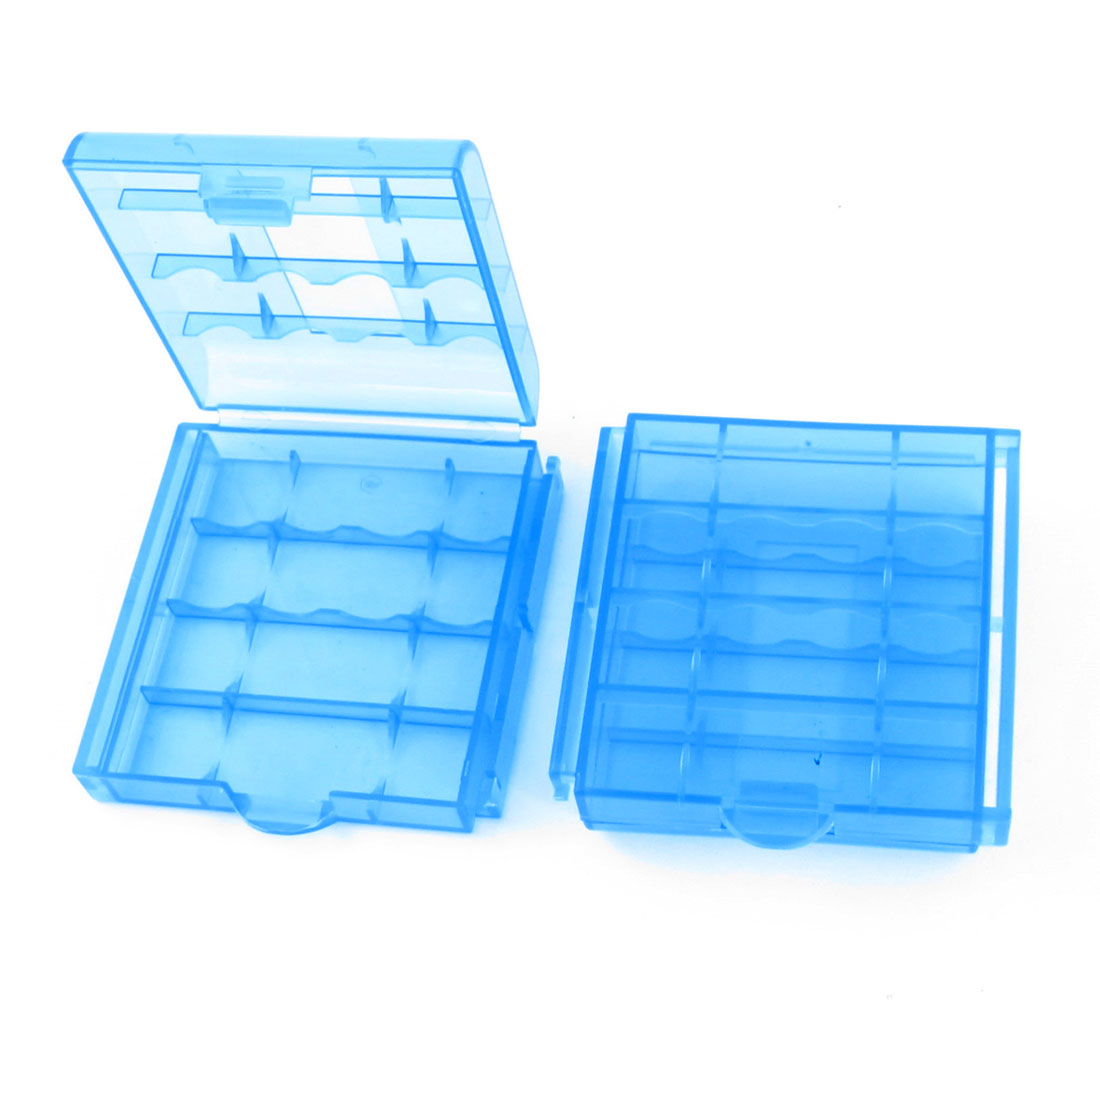 Blue Plastic 4 Capacity AAA Battery Holder Case Storage Box Clear 2PCS